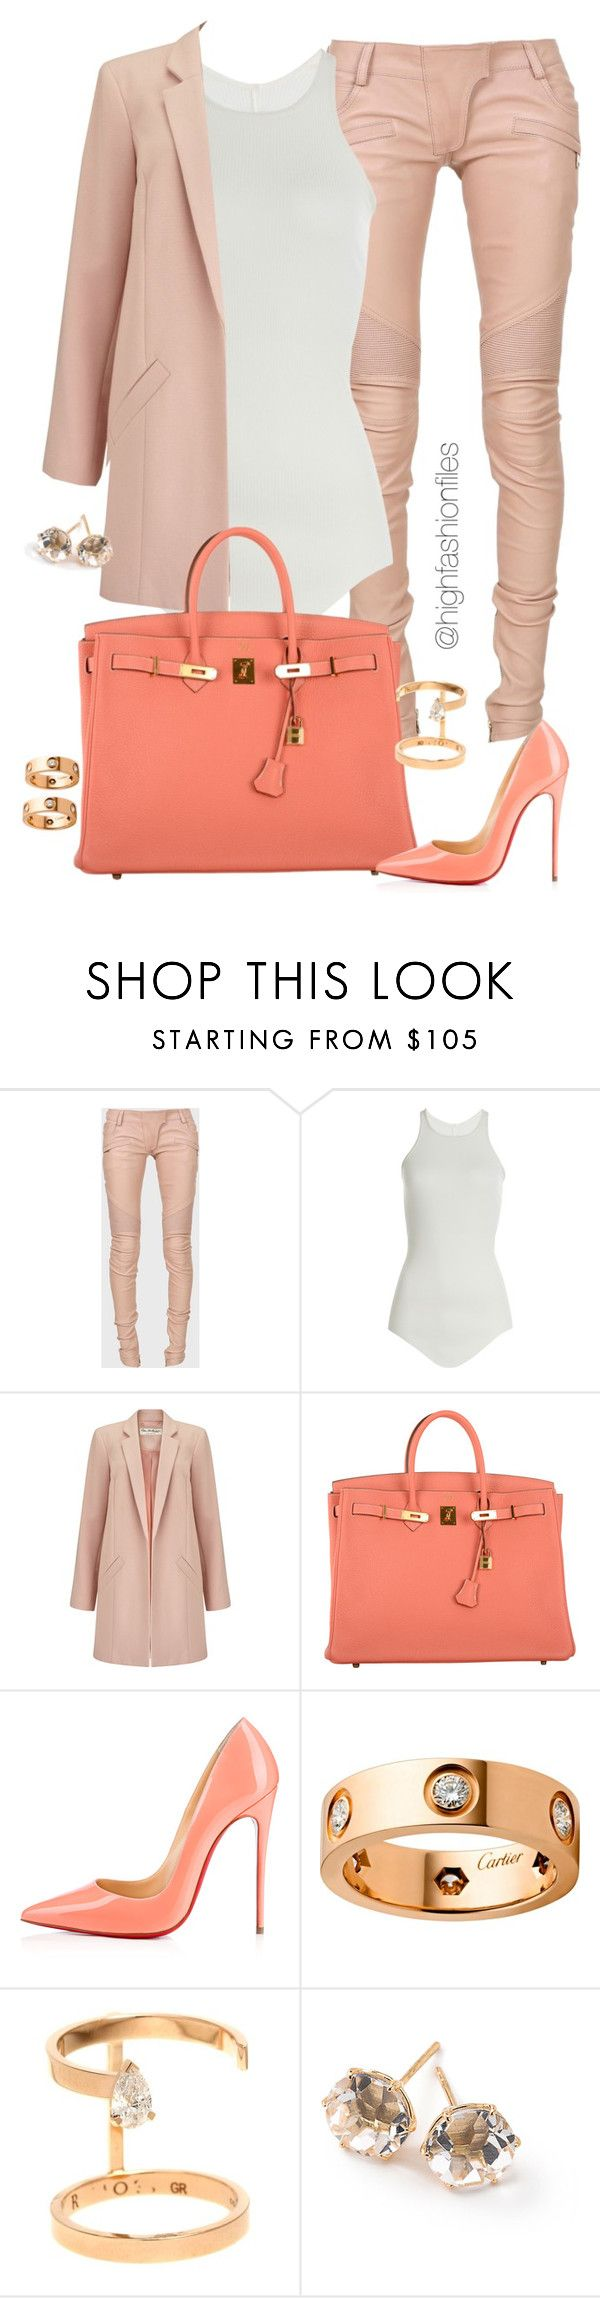 """""""Peach & Coral"""" by highfashionfiles ❤ liked on Polyvore featuring Balmain, Rick Owens, Miss Selfridge, Hermès, Christian Louboutin, Cartier, Repossi and Ippolita"""